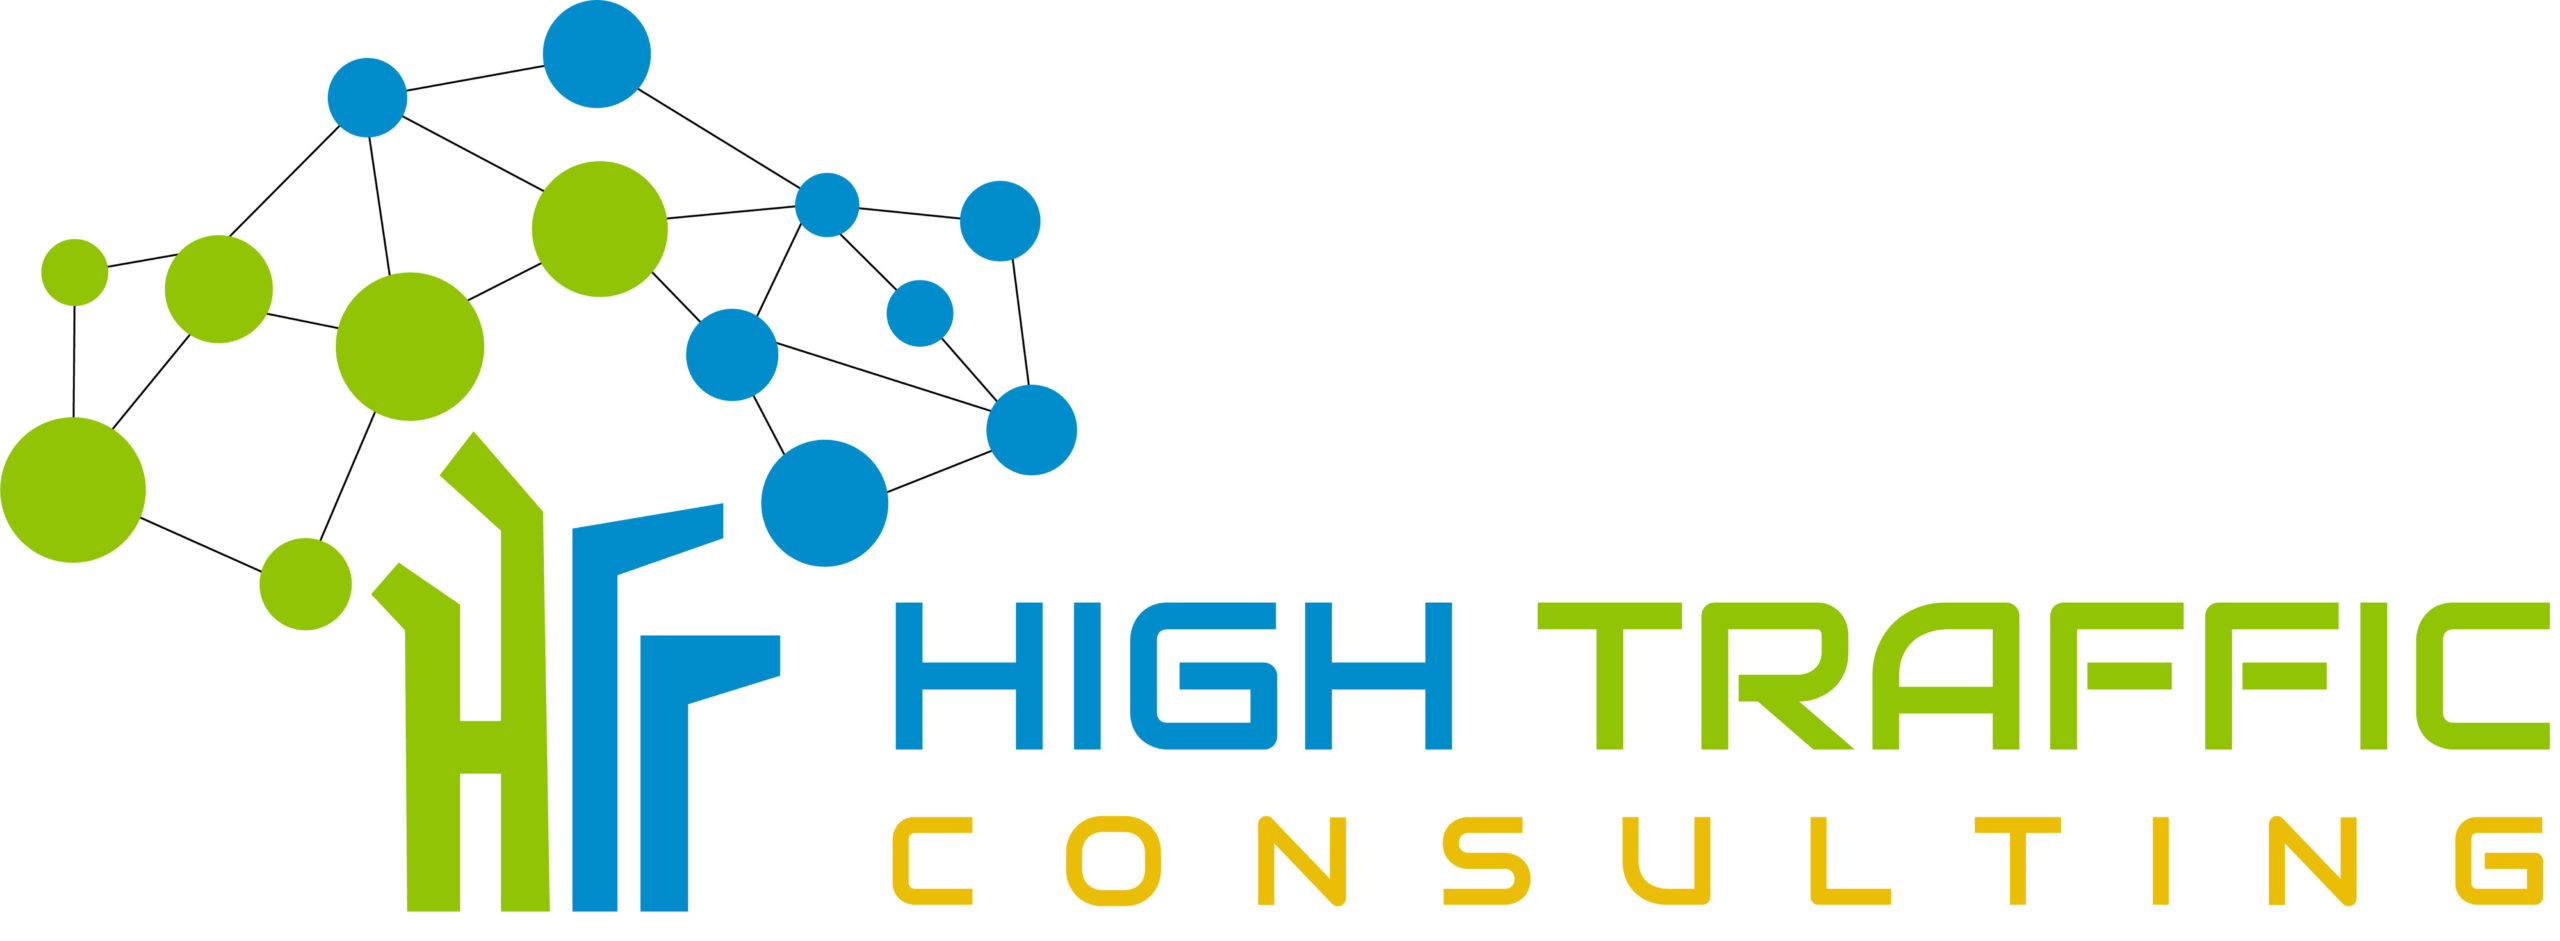 High Traffic Consulting